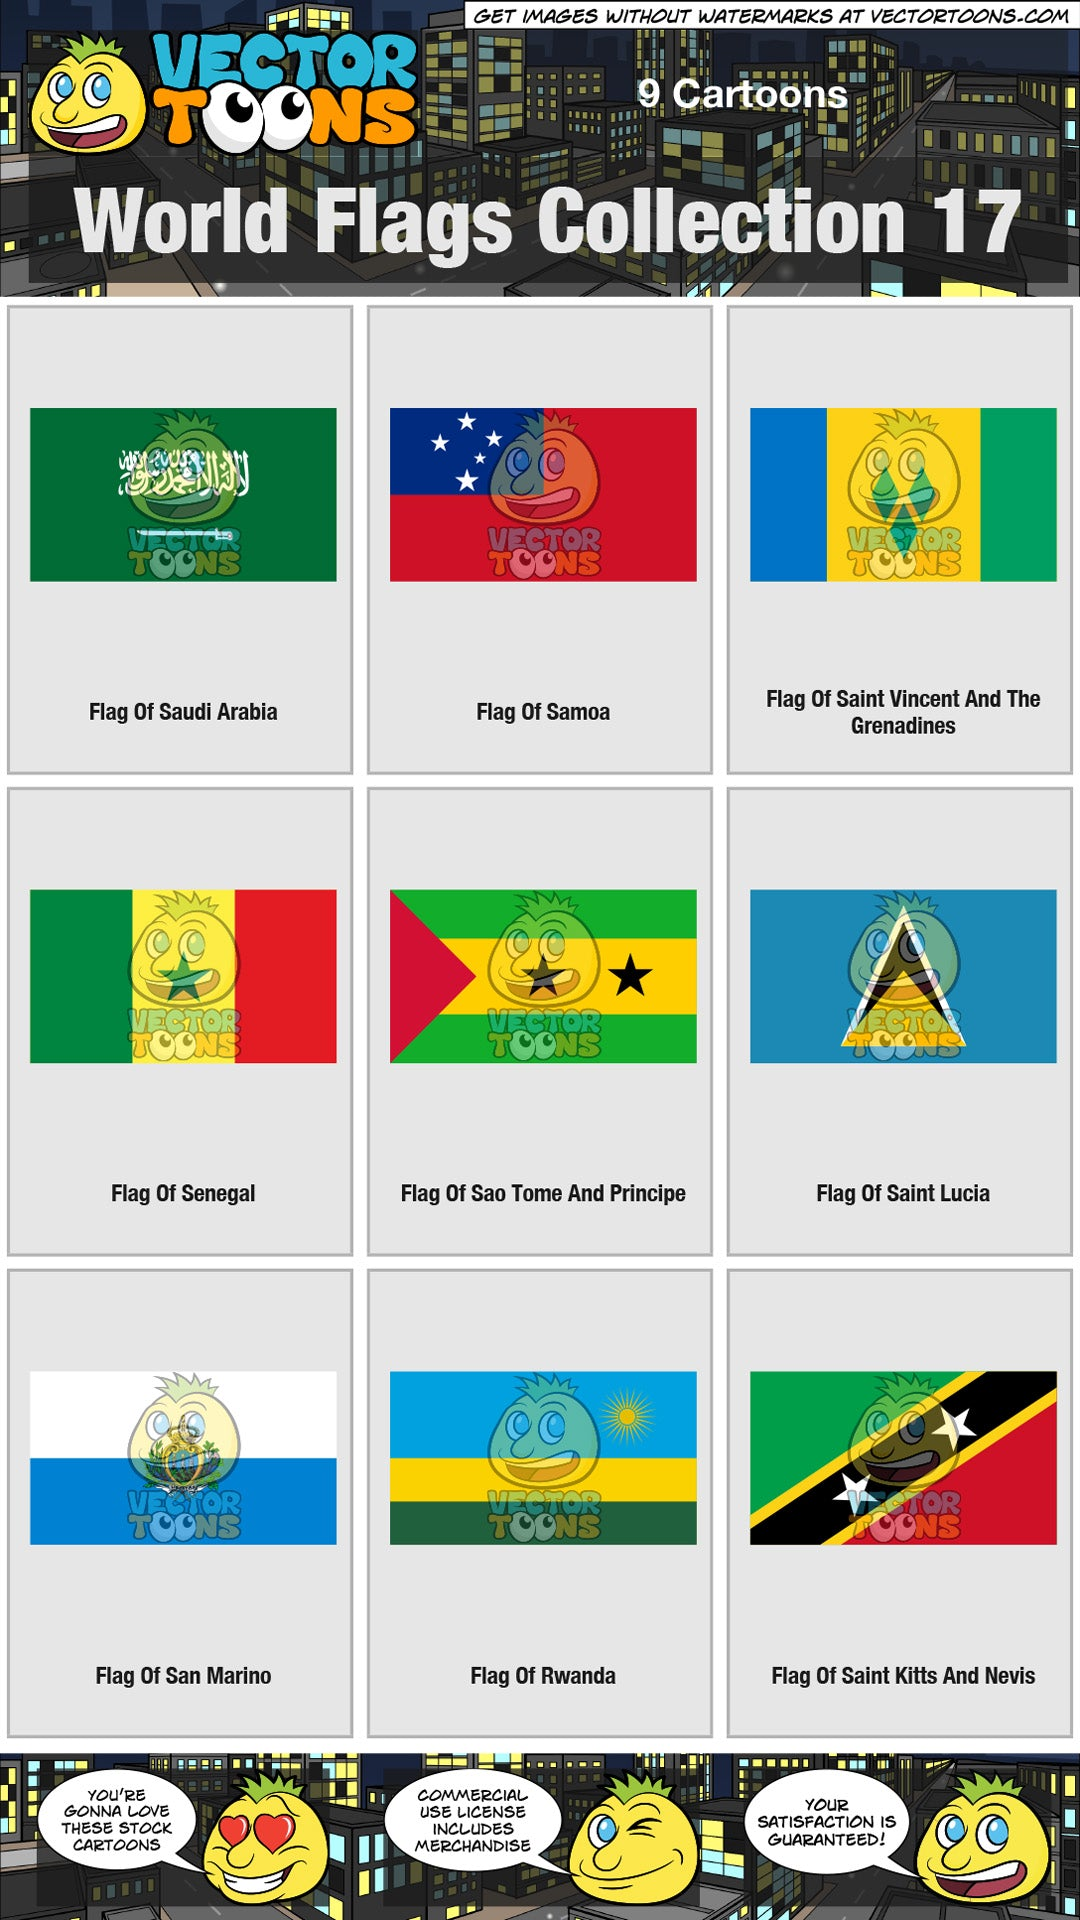 World Flags Collection 17